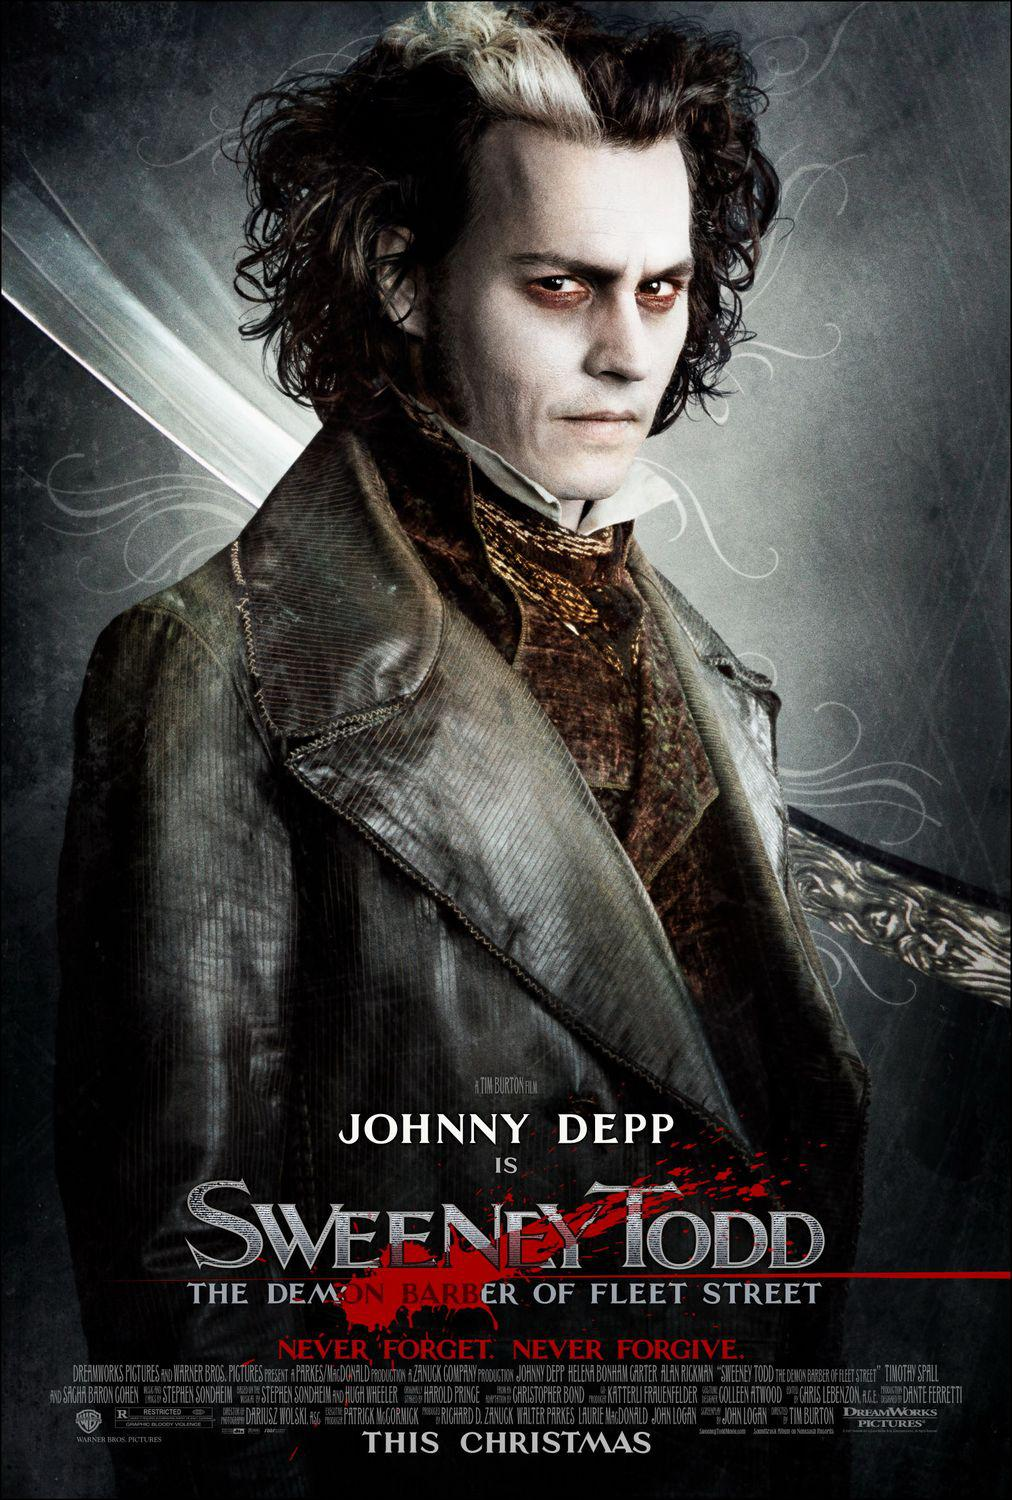 Sweeney Todd - Il diabolico barbiere di Fleet Street - The Demon Barber of Fleet Street - Johnny Depp